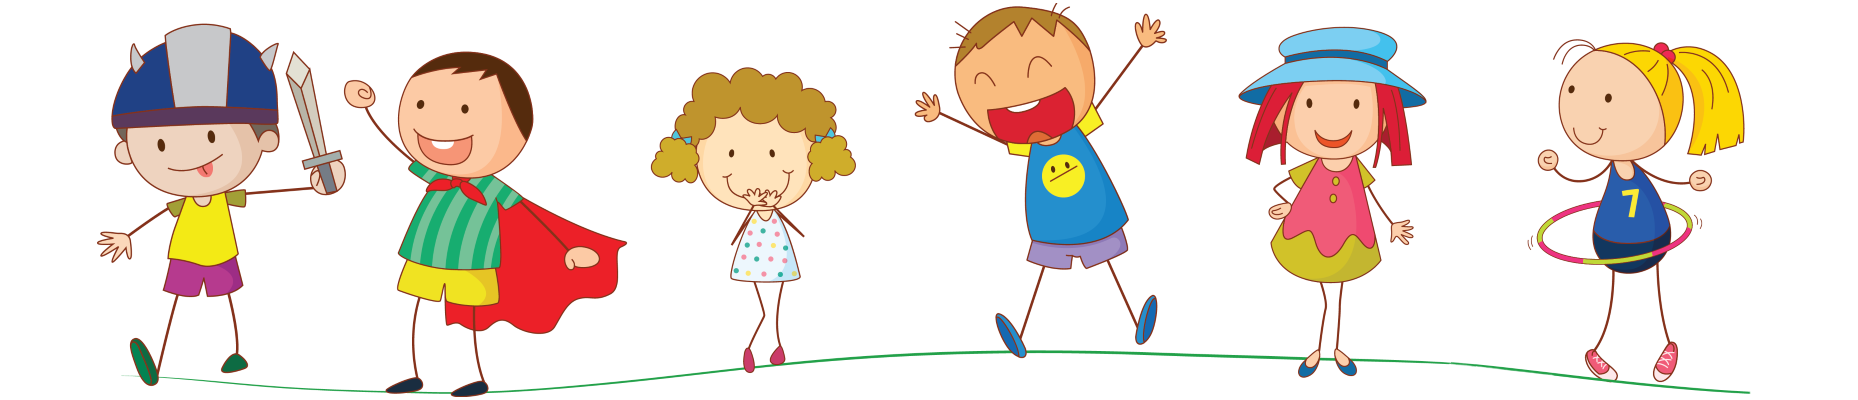 a introduction into the development of the kids on the age of 12 By about age 2 weeks, an infant should start to gain weight and grow quickly by age 4 to 6 months, an infant's weight should be double their birth weight during the second half of the first year of life, growth is not as rapid.